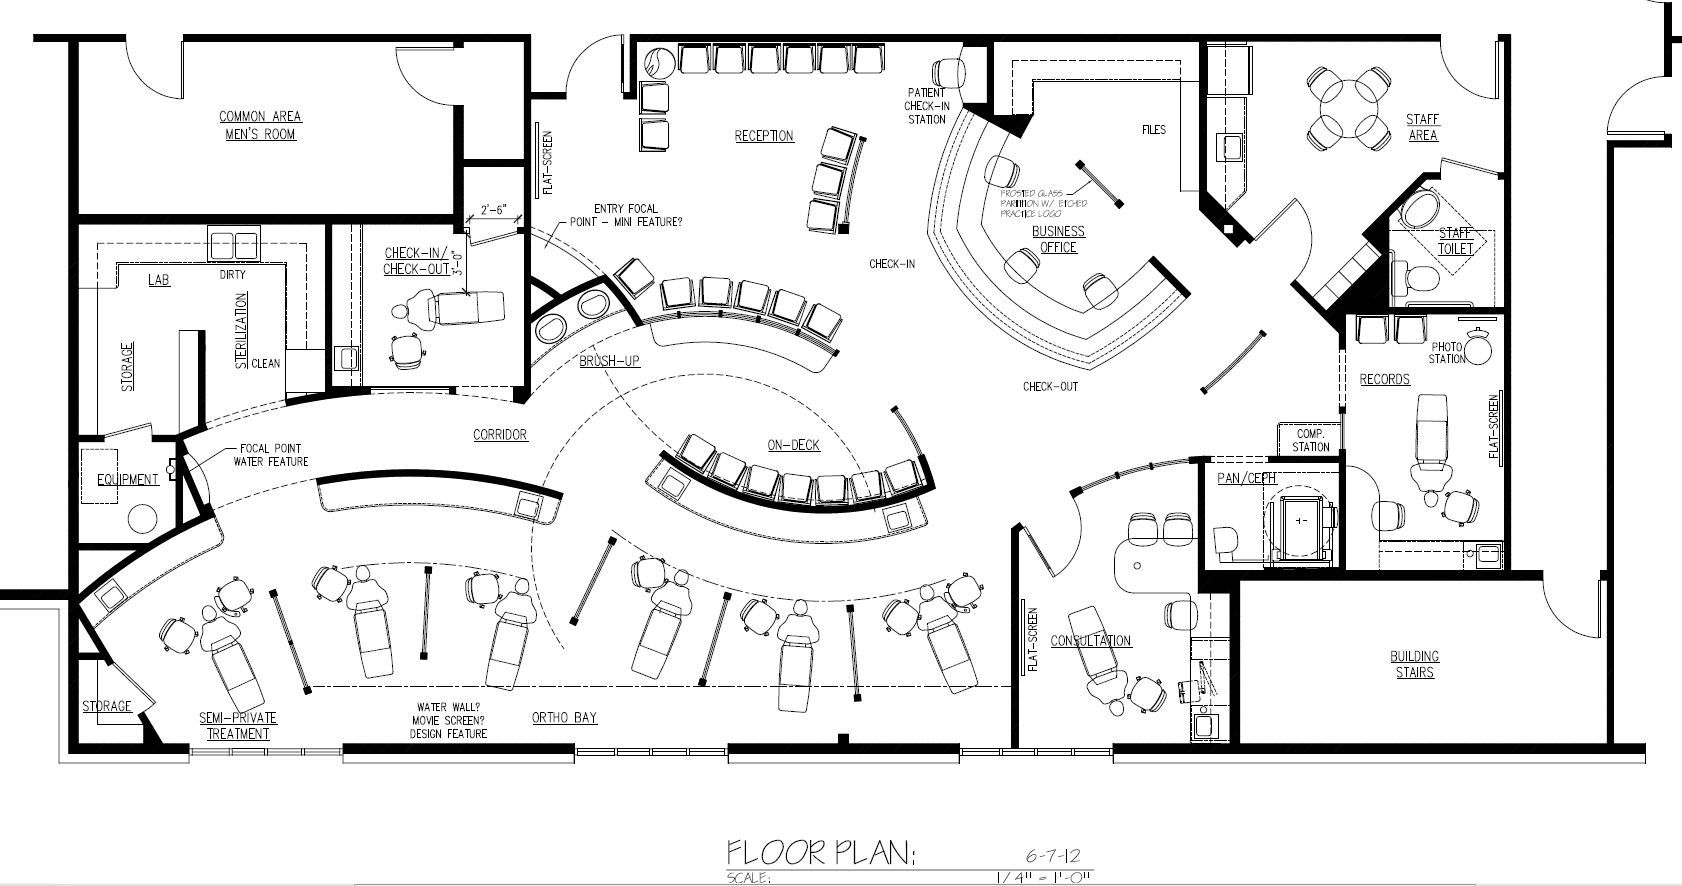 0368f9a6705212fc259d52cf40c27b6f Jpg 1682 886 Office Layout Plan Office Floor Plan Interior Design Gallery